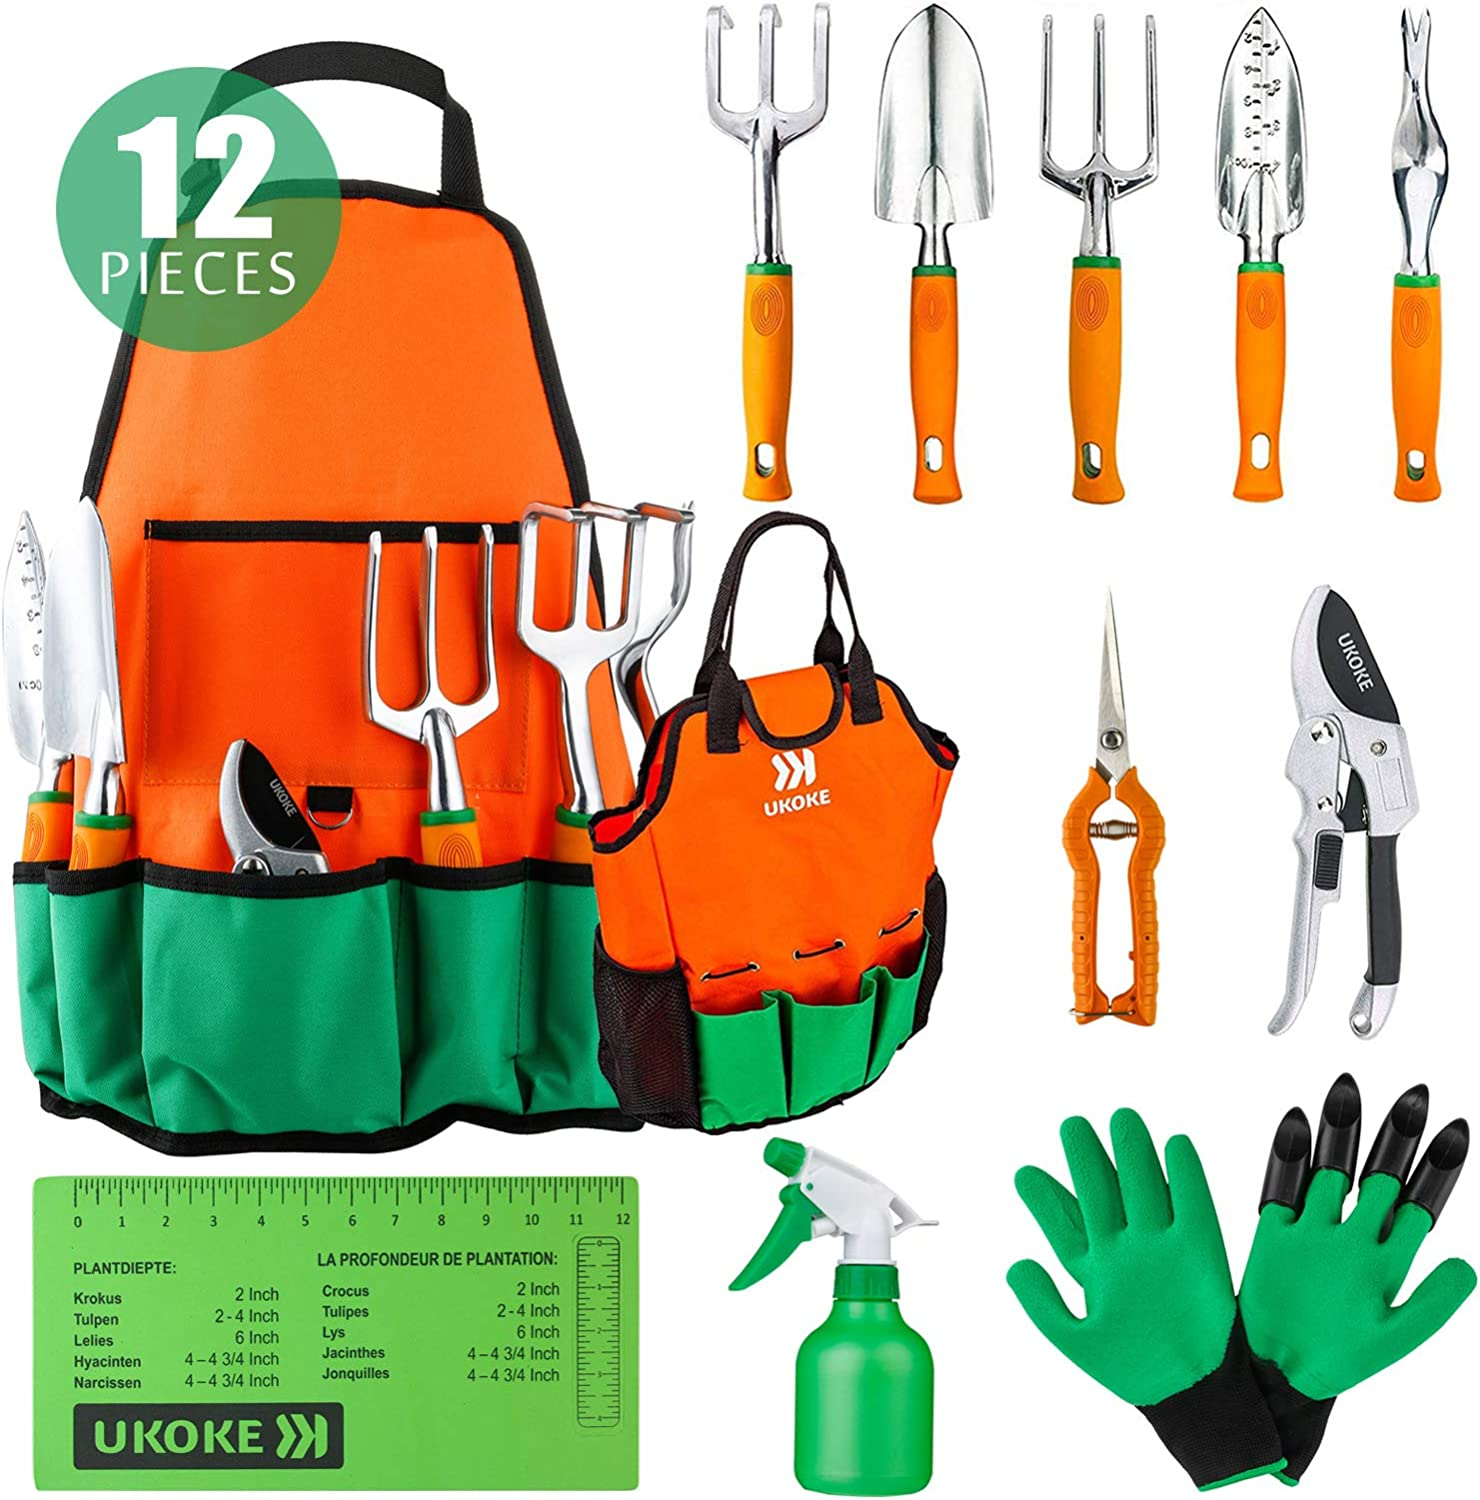 UKOKE Garden Tool Set, 12 Piece Aluminum Hand Tool Kit, Garden Canvas Apron with Storage Pocket, Outdoor Tool, Heavy Duty Gardening Work Set with Ergonomic Handle, Gardening Tools for women men : Garden & Outdoor